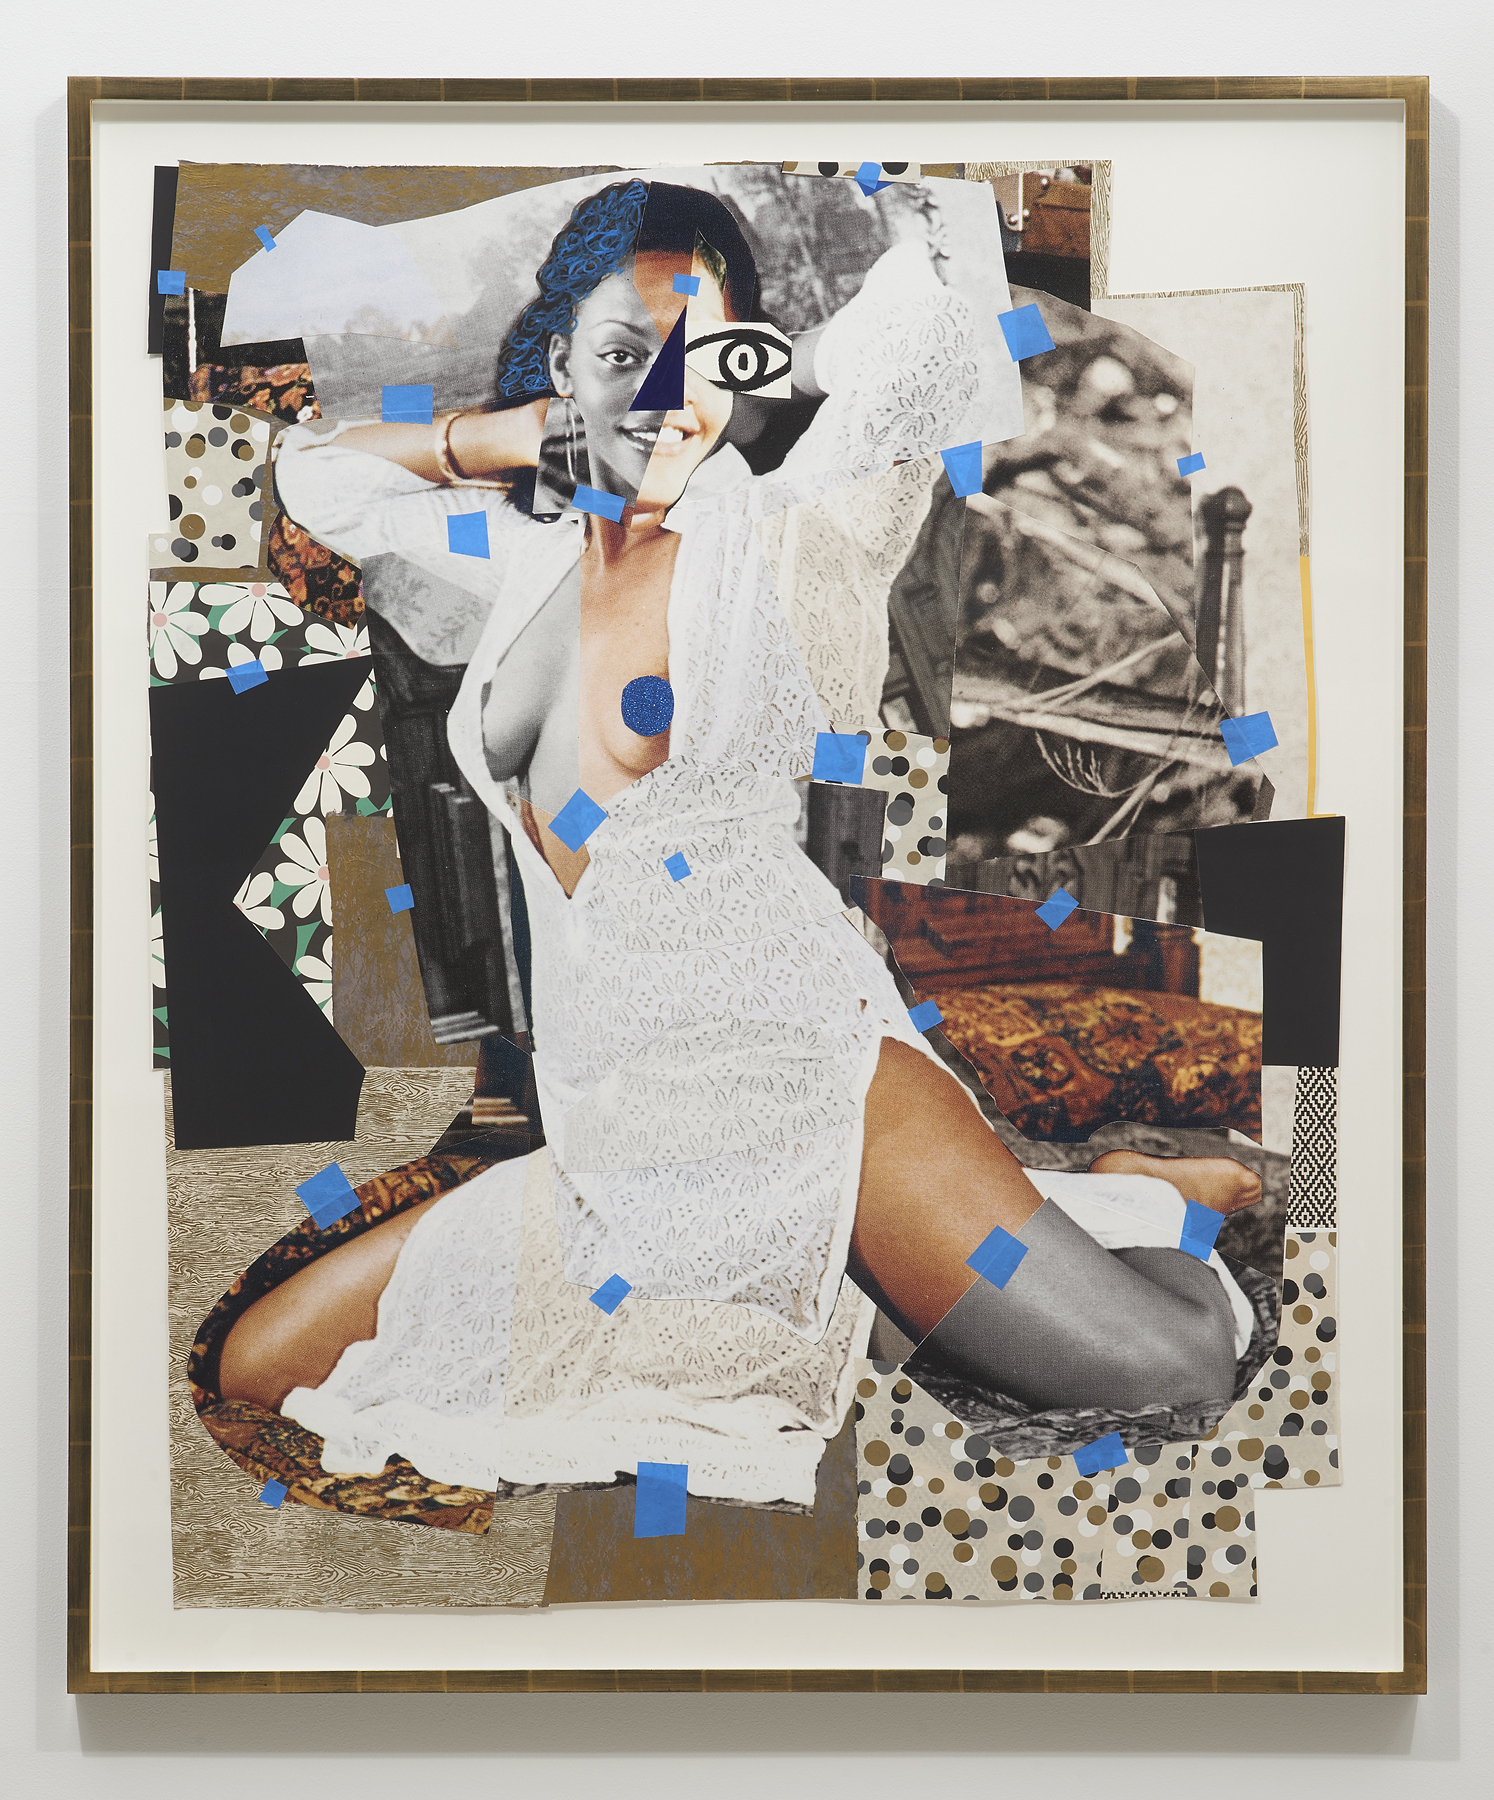 Mickalene Thomas,  Jet Blue #3 , 2018, Oil paint, glitter, tape, charcoal and oil pastel on paper, 54 1/4 x 44 1/2 inches